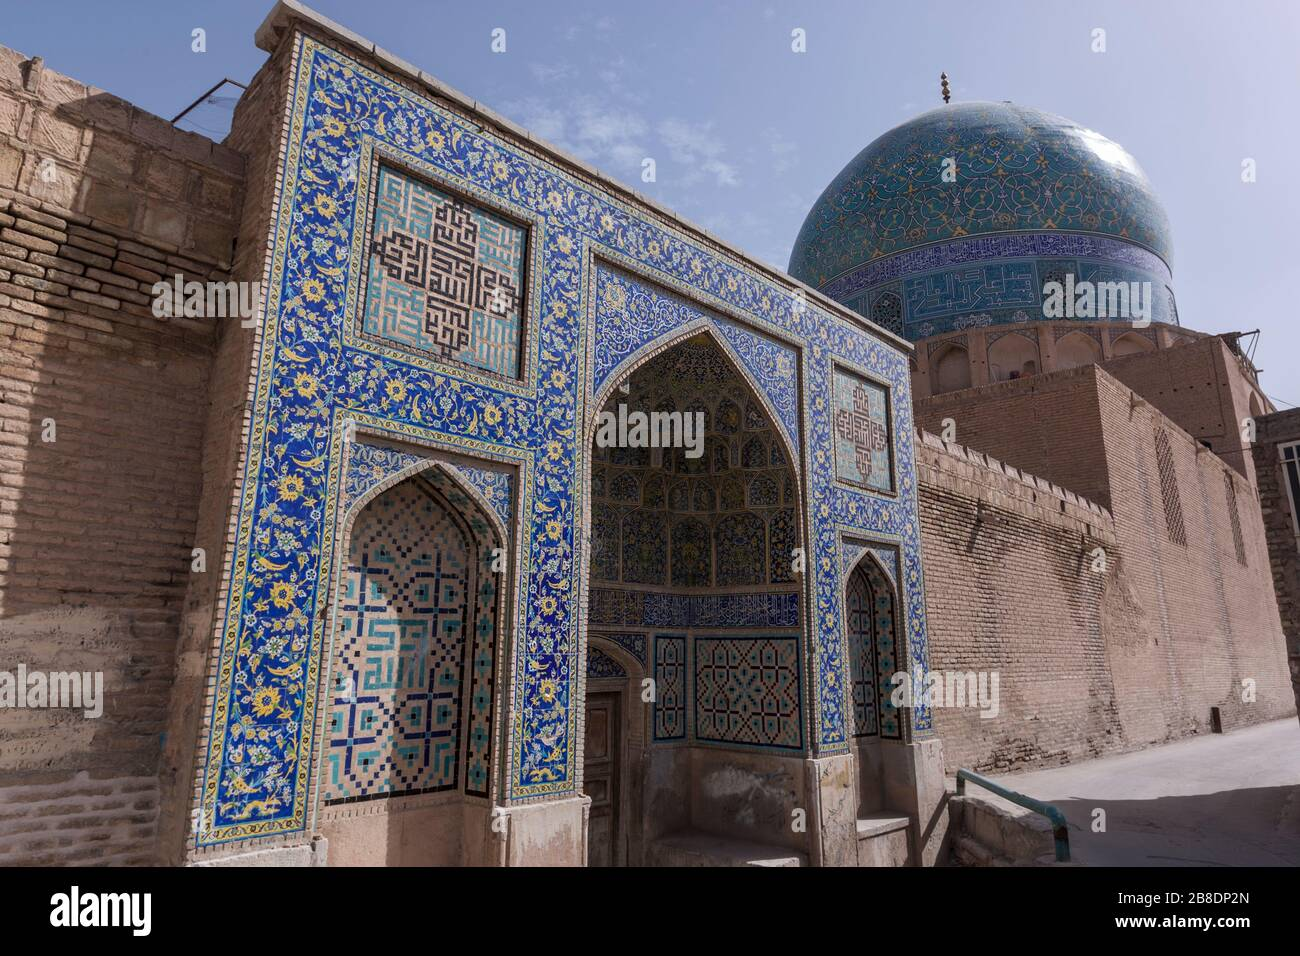 exterior-of-the-imam-mosque-isfahan-iran